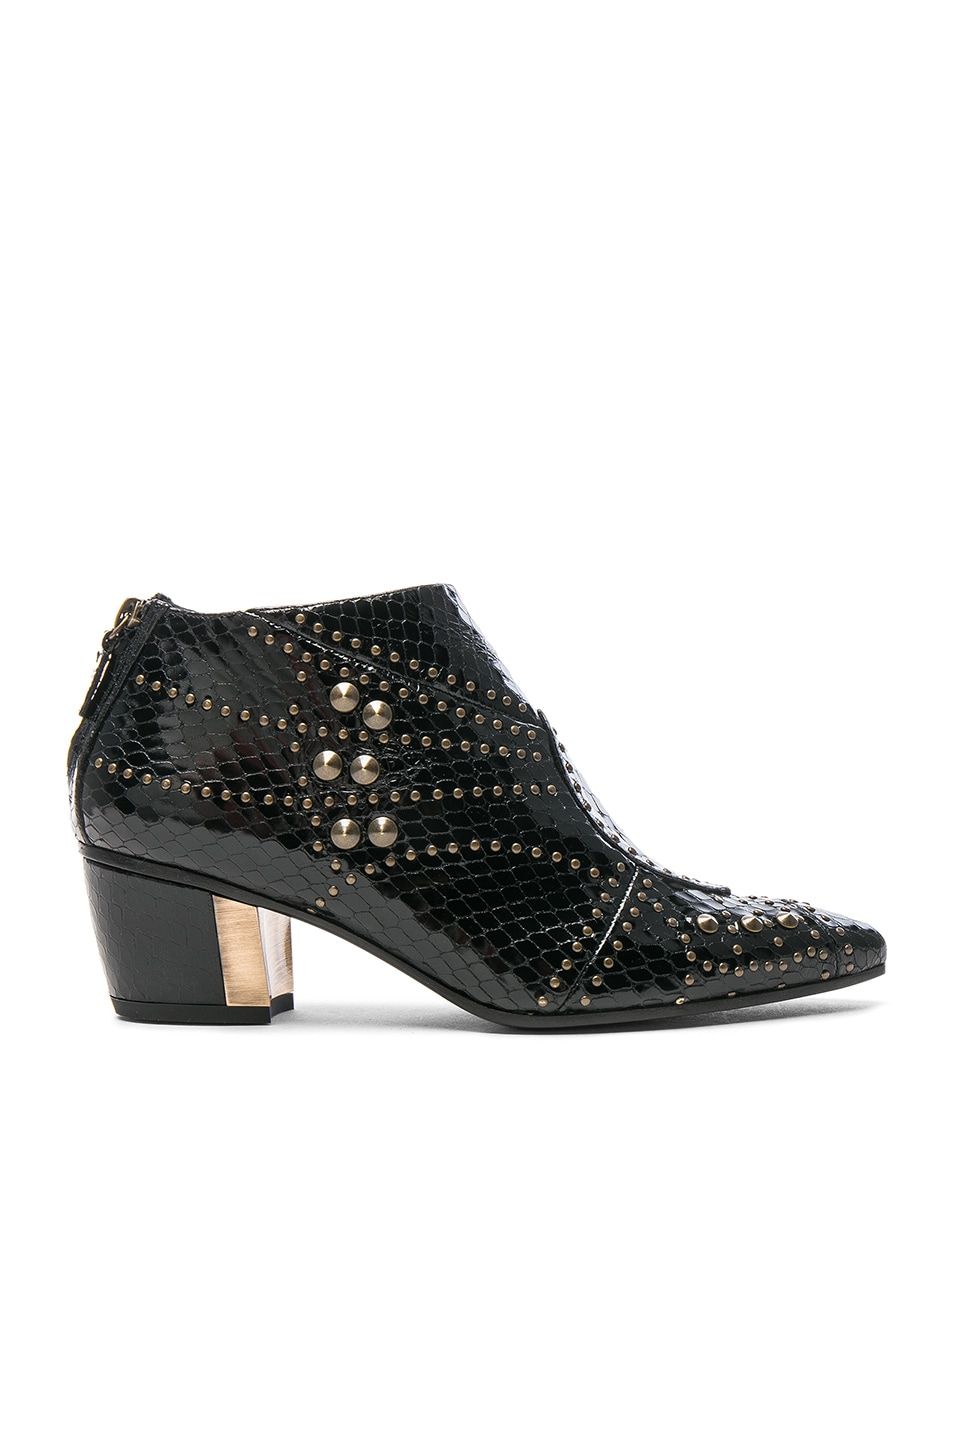 Image 1 of Rodarte for FWRD Embossed Studded Leather Booties in Black